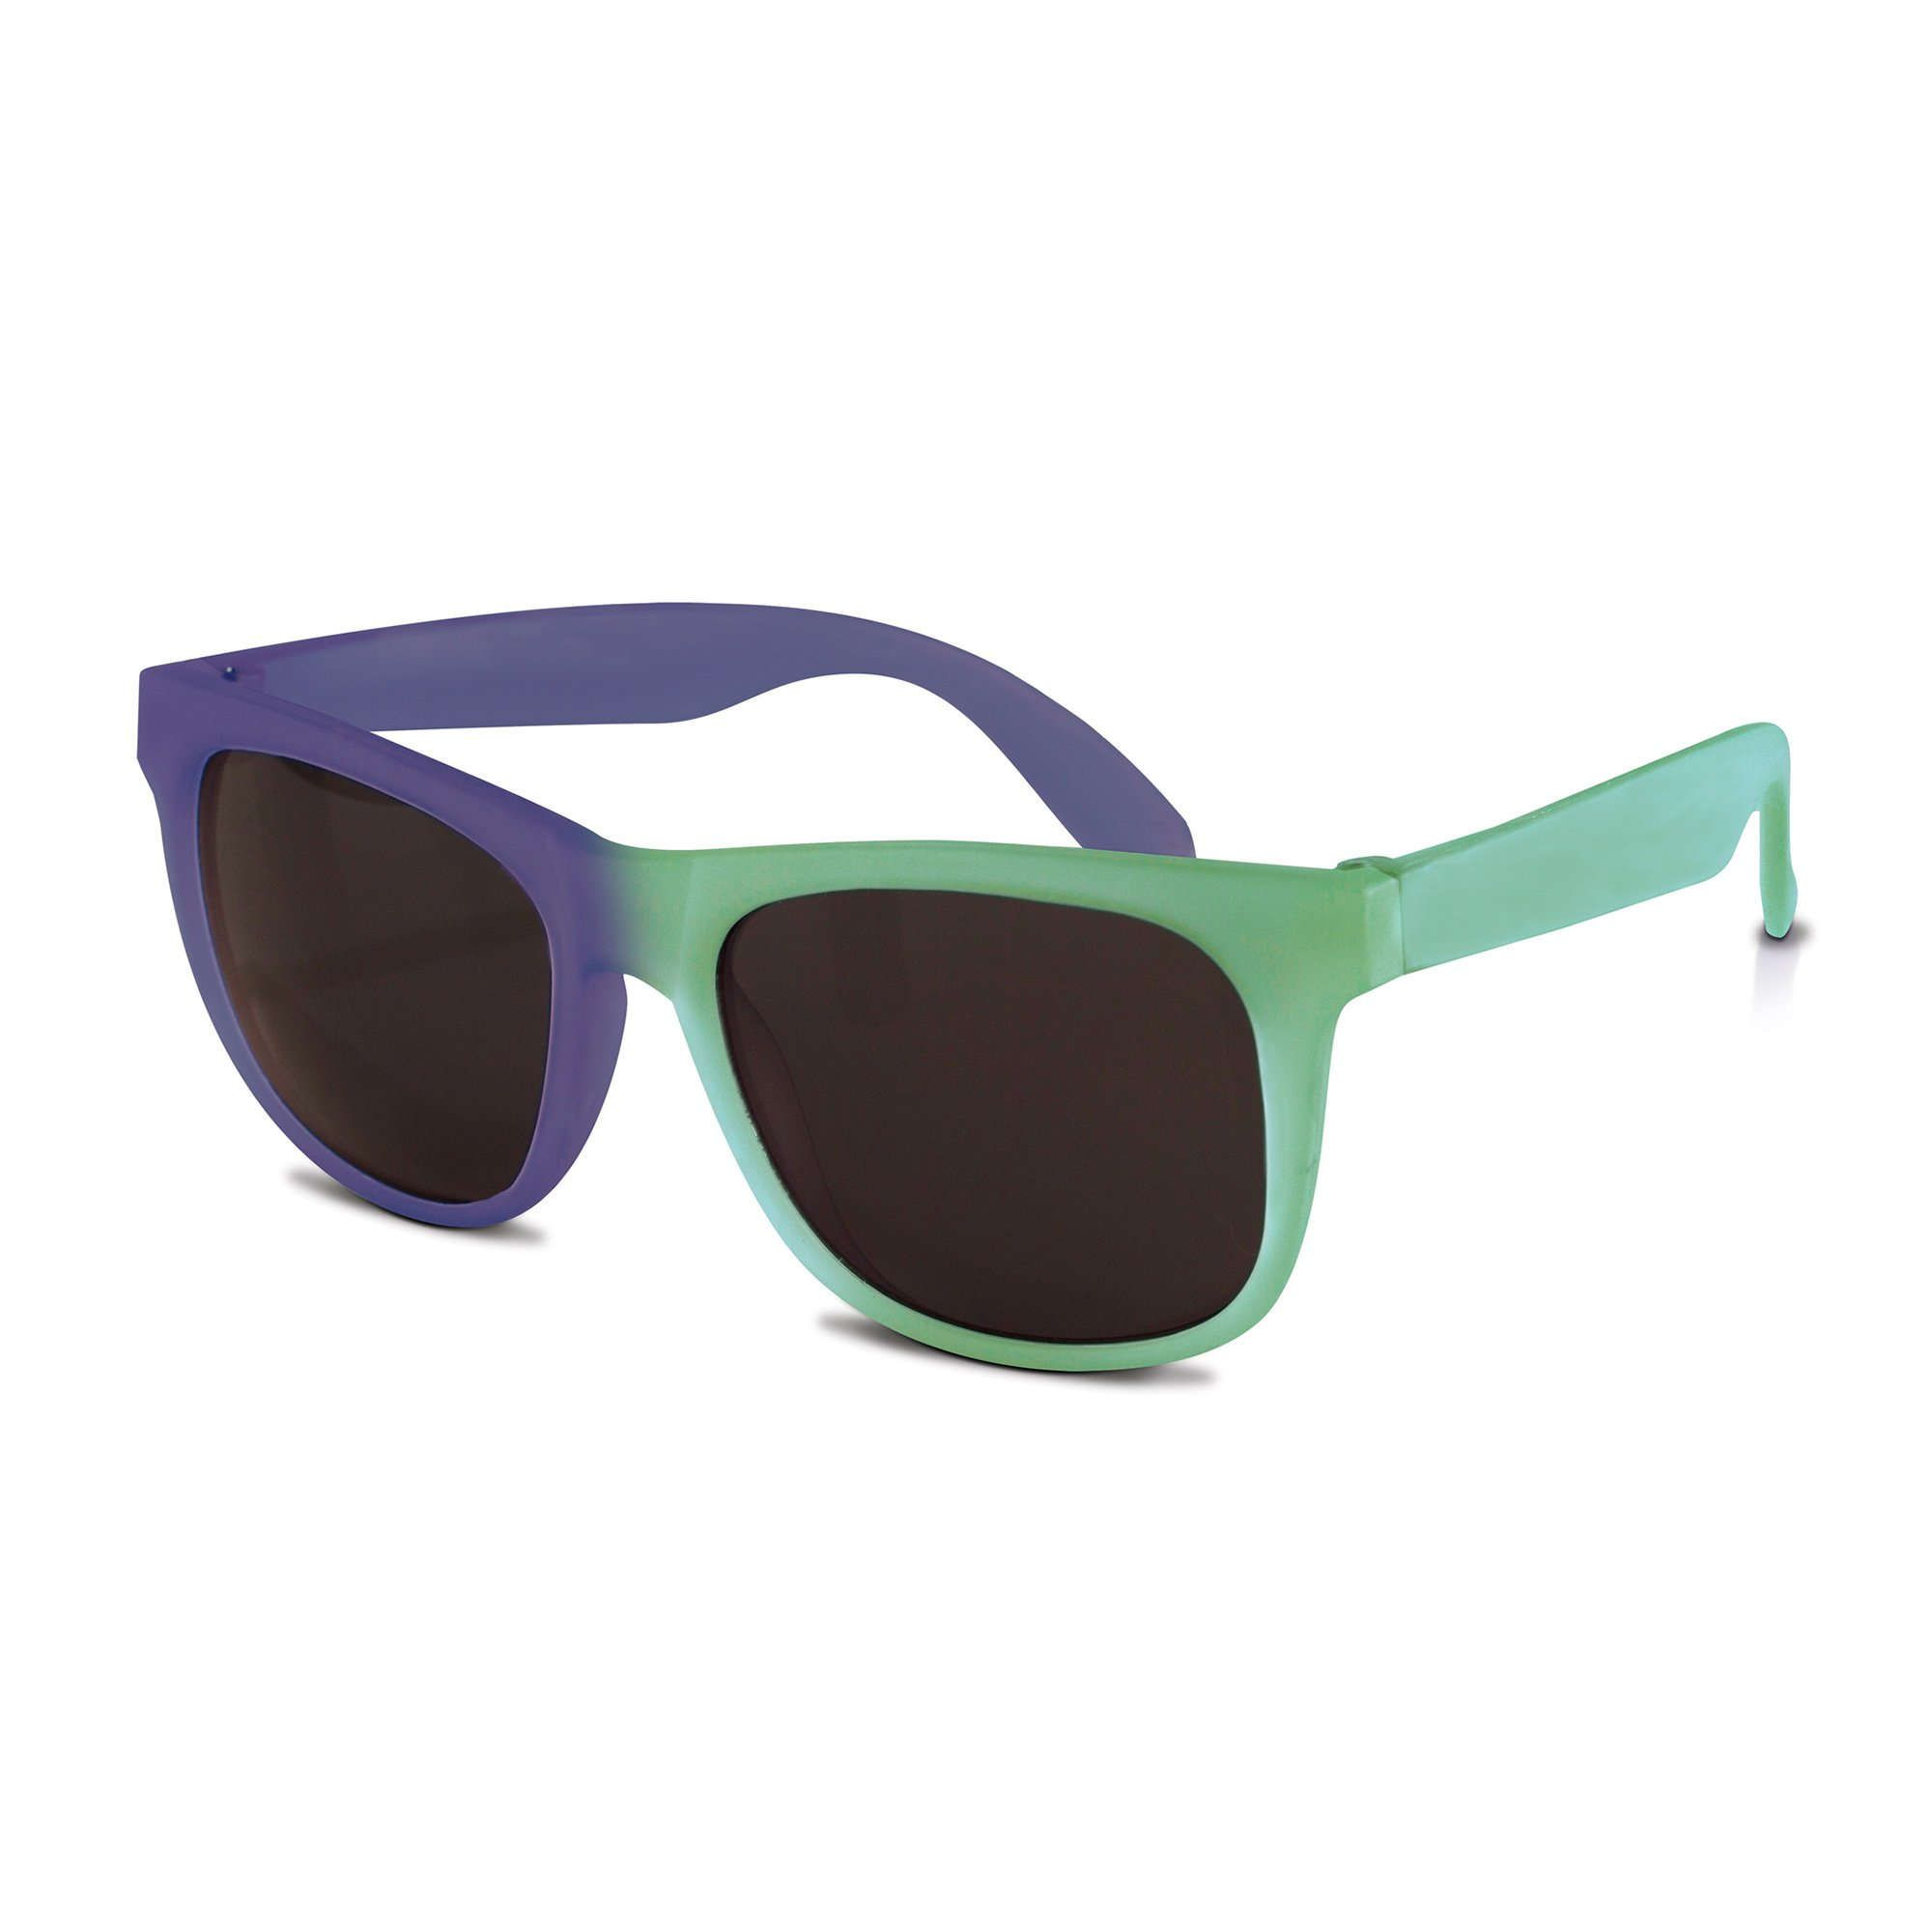 28++ Cool sunglasses coloring page ideas in 2021